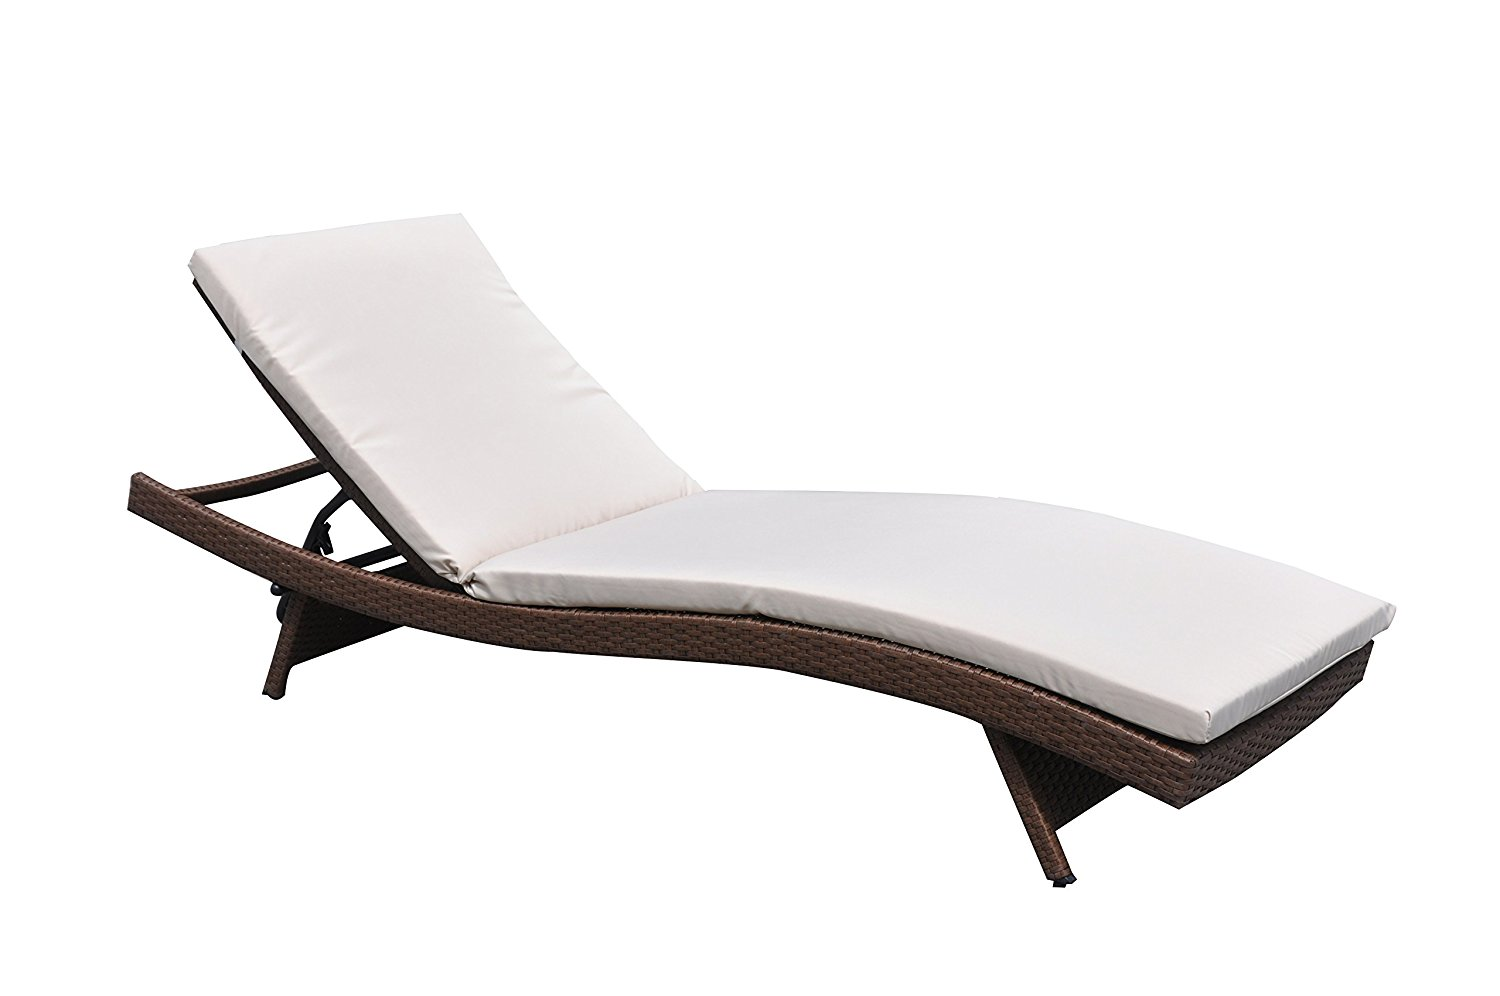 outdoor paito recliner pe wicker adjustable pool chaise On chaise lounge clearance